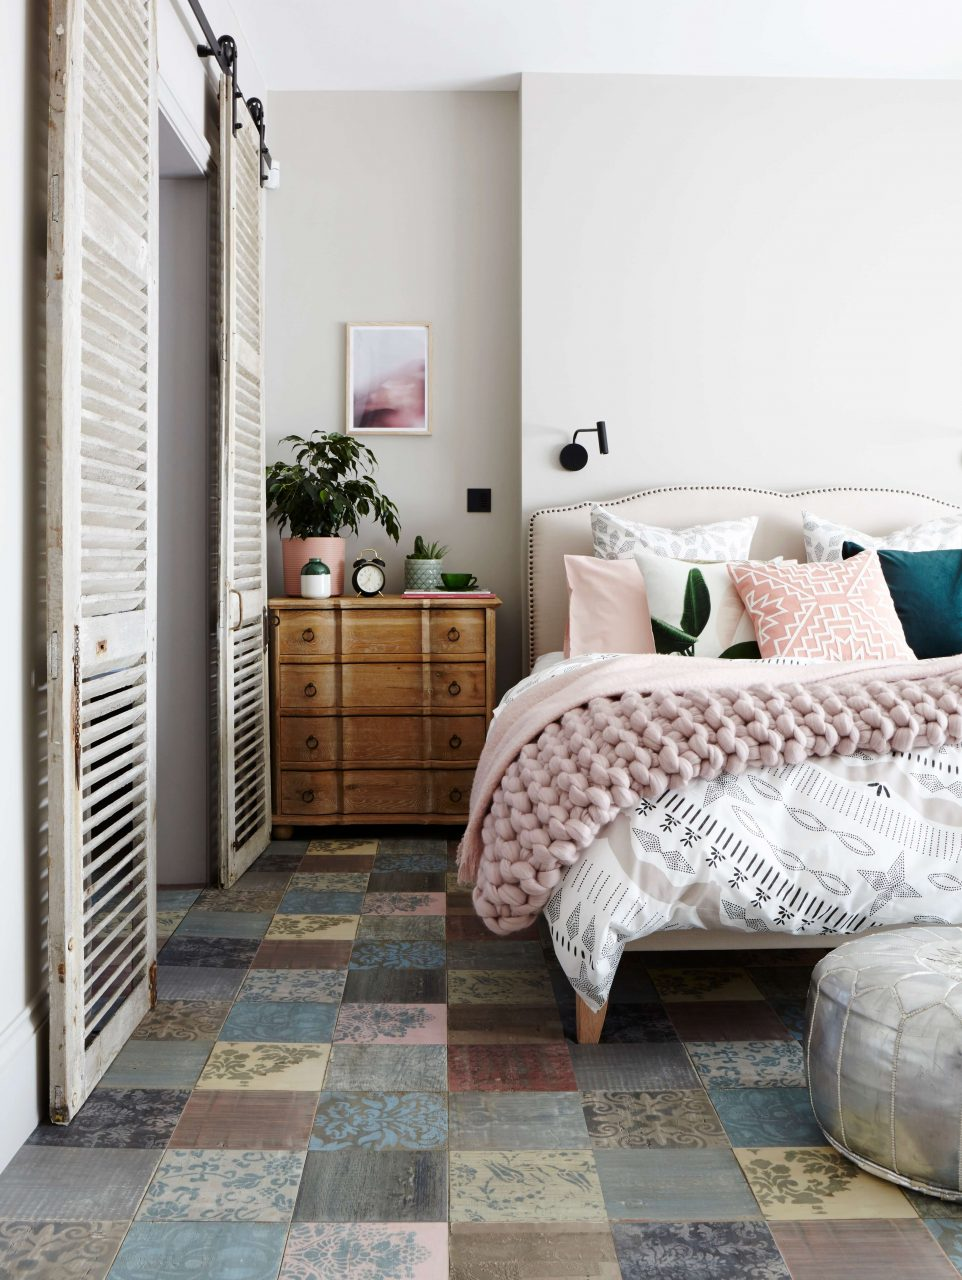 The Big Interior Design Trends For 2019 Welovehome